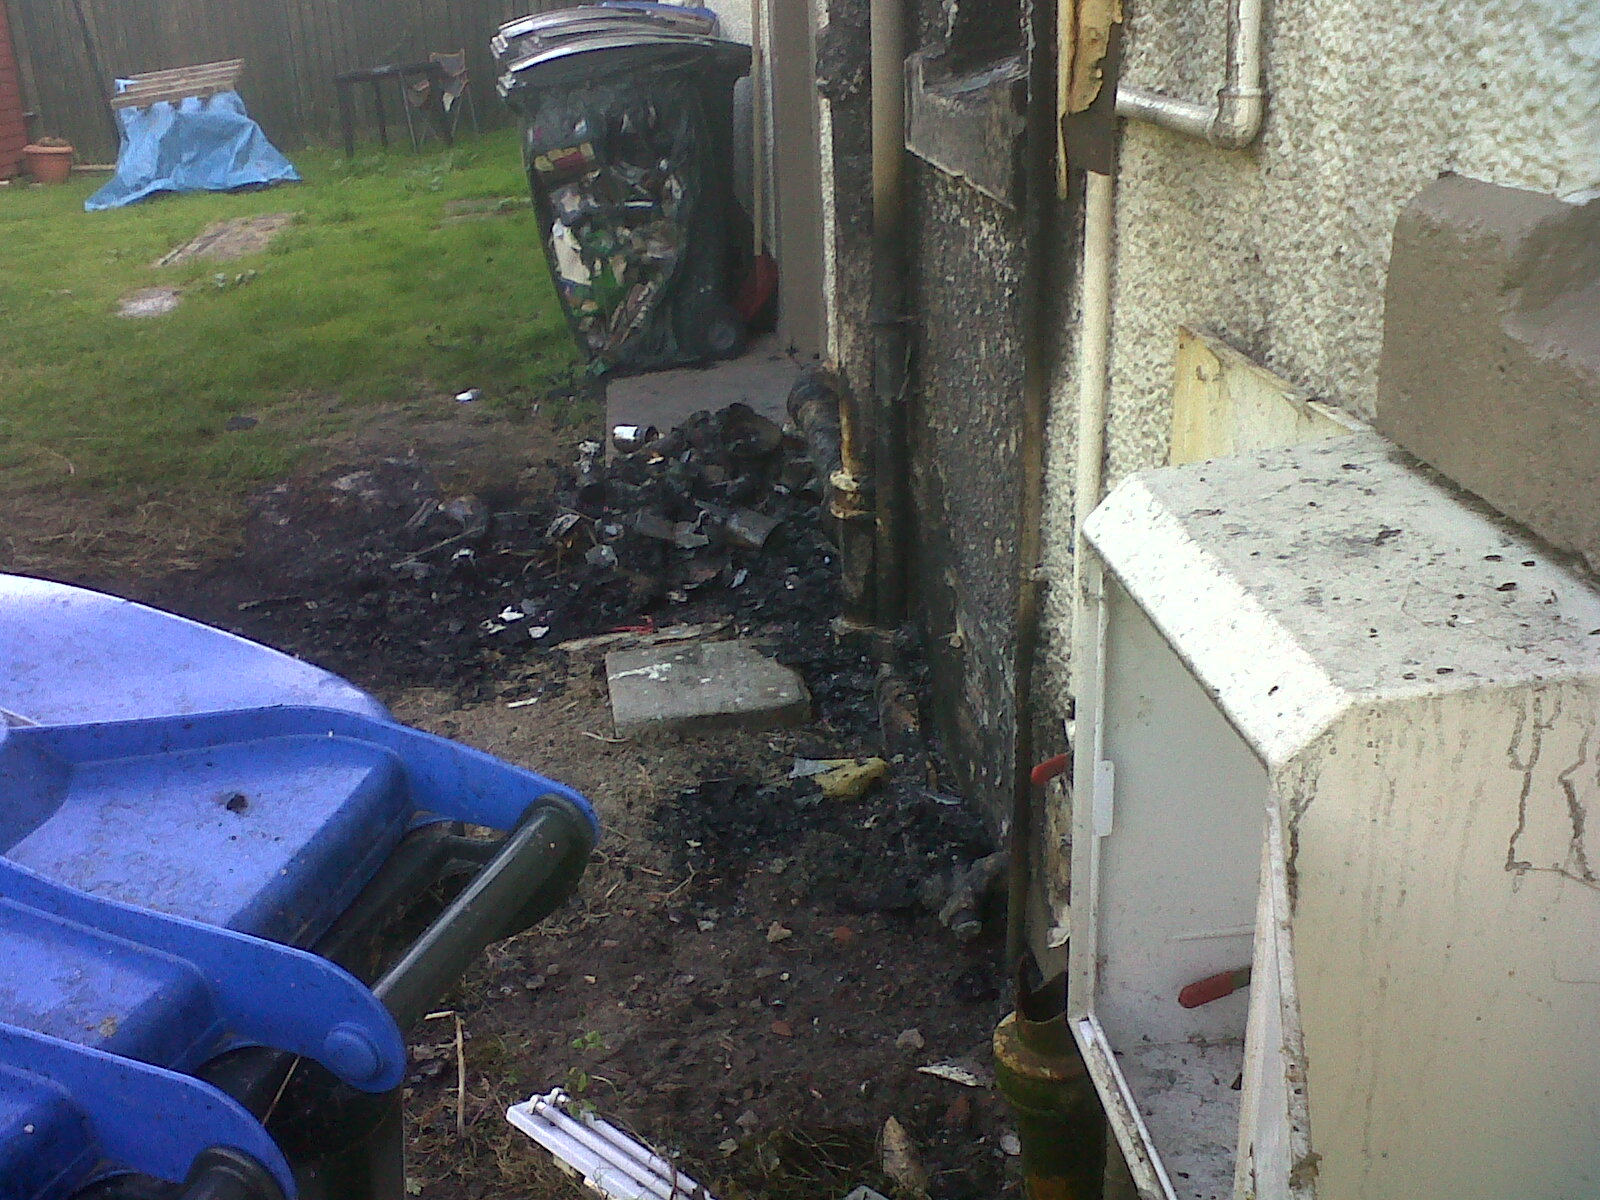 SFRS respond to fire in Muirton area of Perth